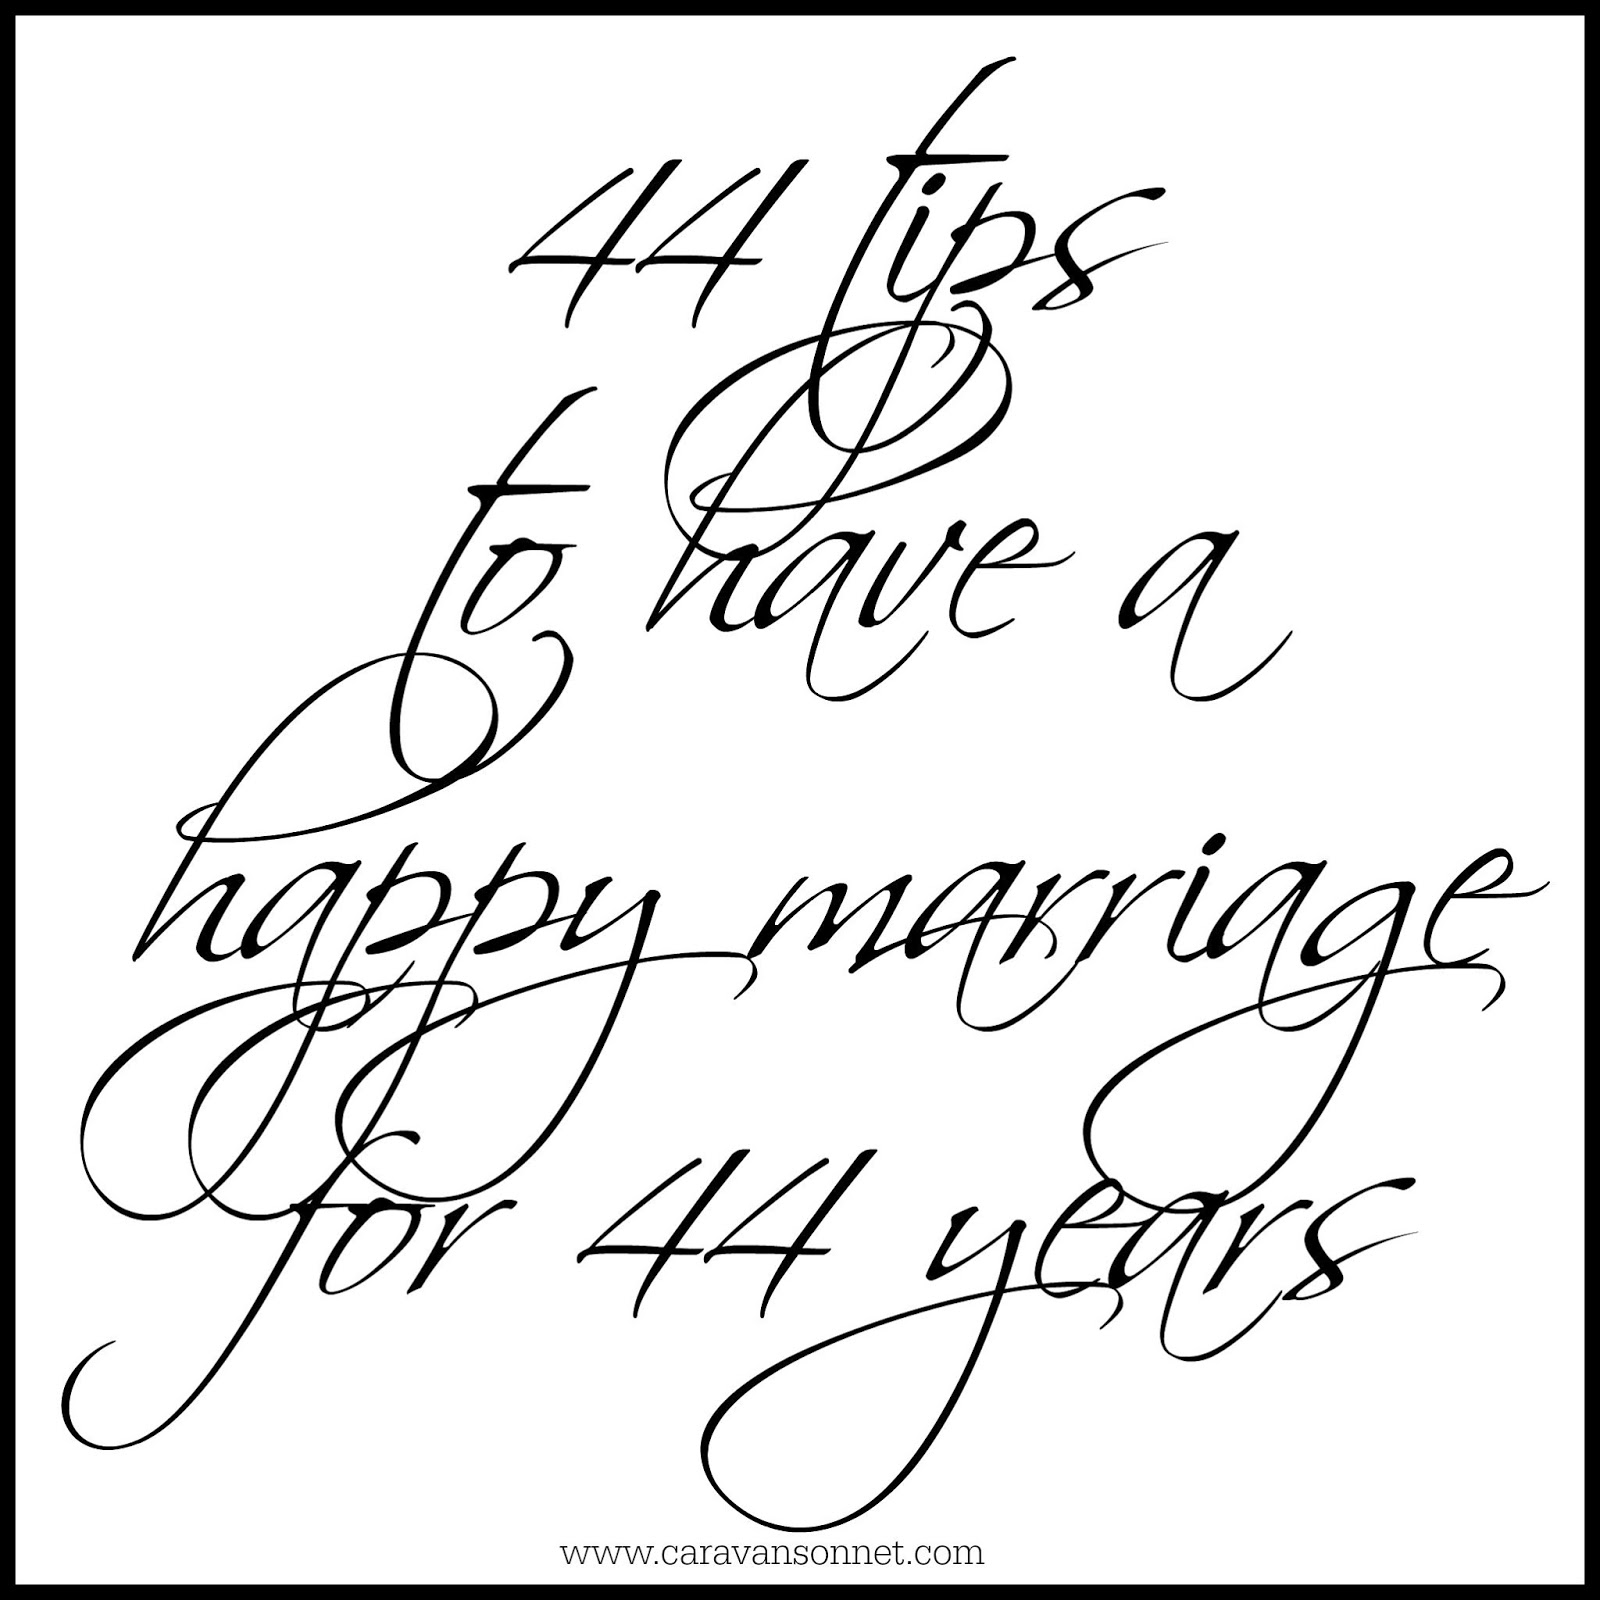 happy 44 wedding anniversary